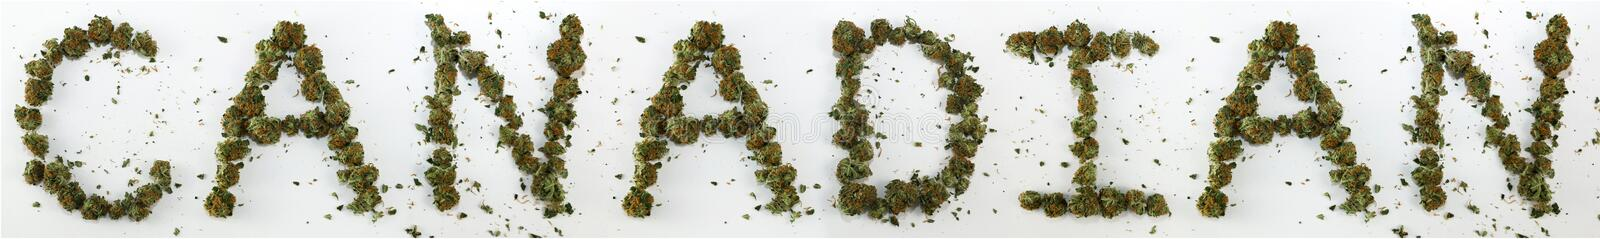 Canadian Spelled With Marijuana. The word Canadian spelled out with real marijuana stock image